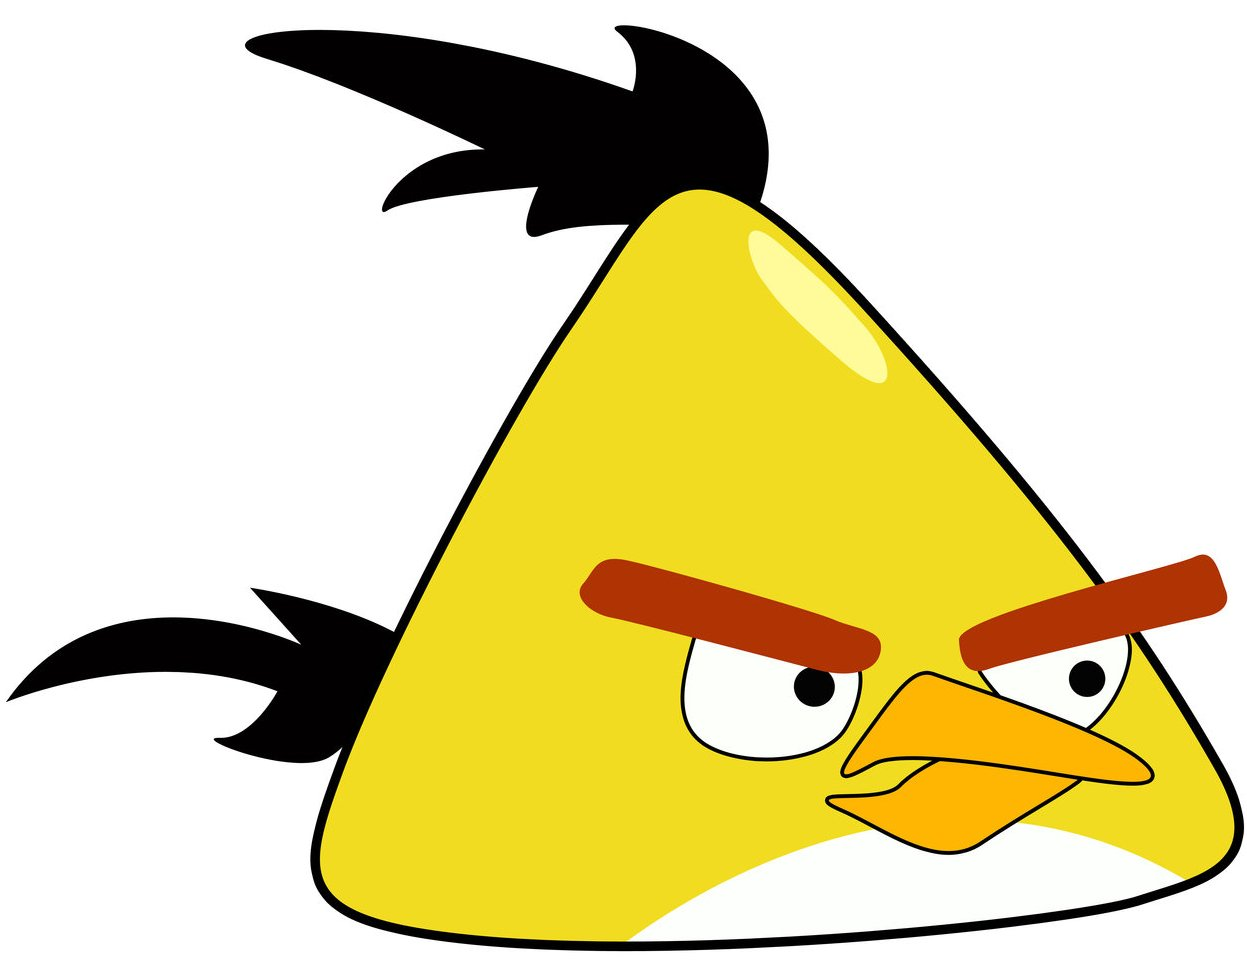 angry birds images to print - photo #33